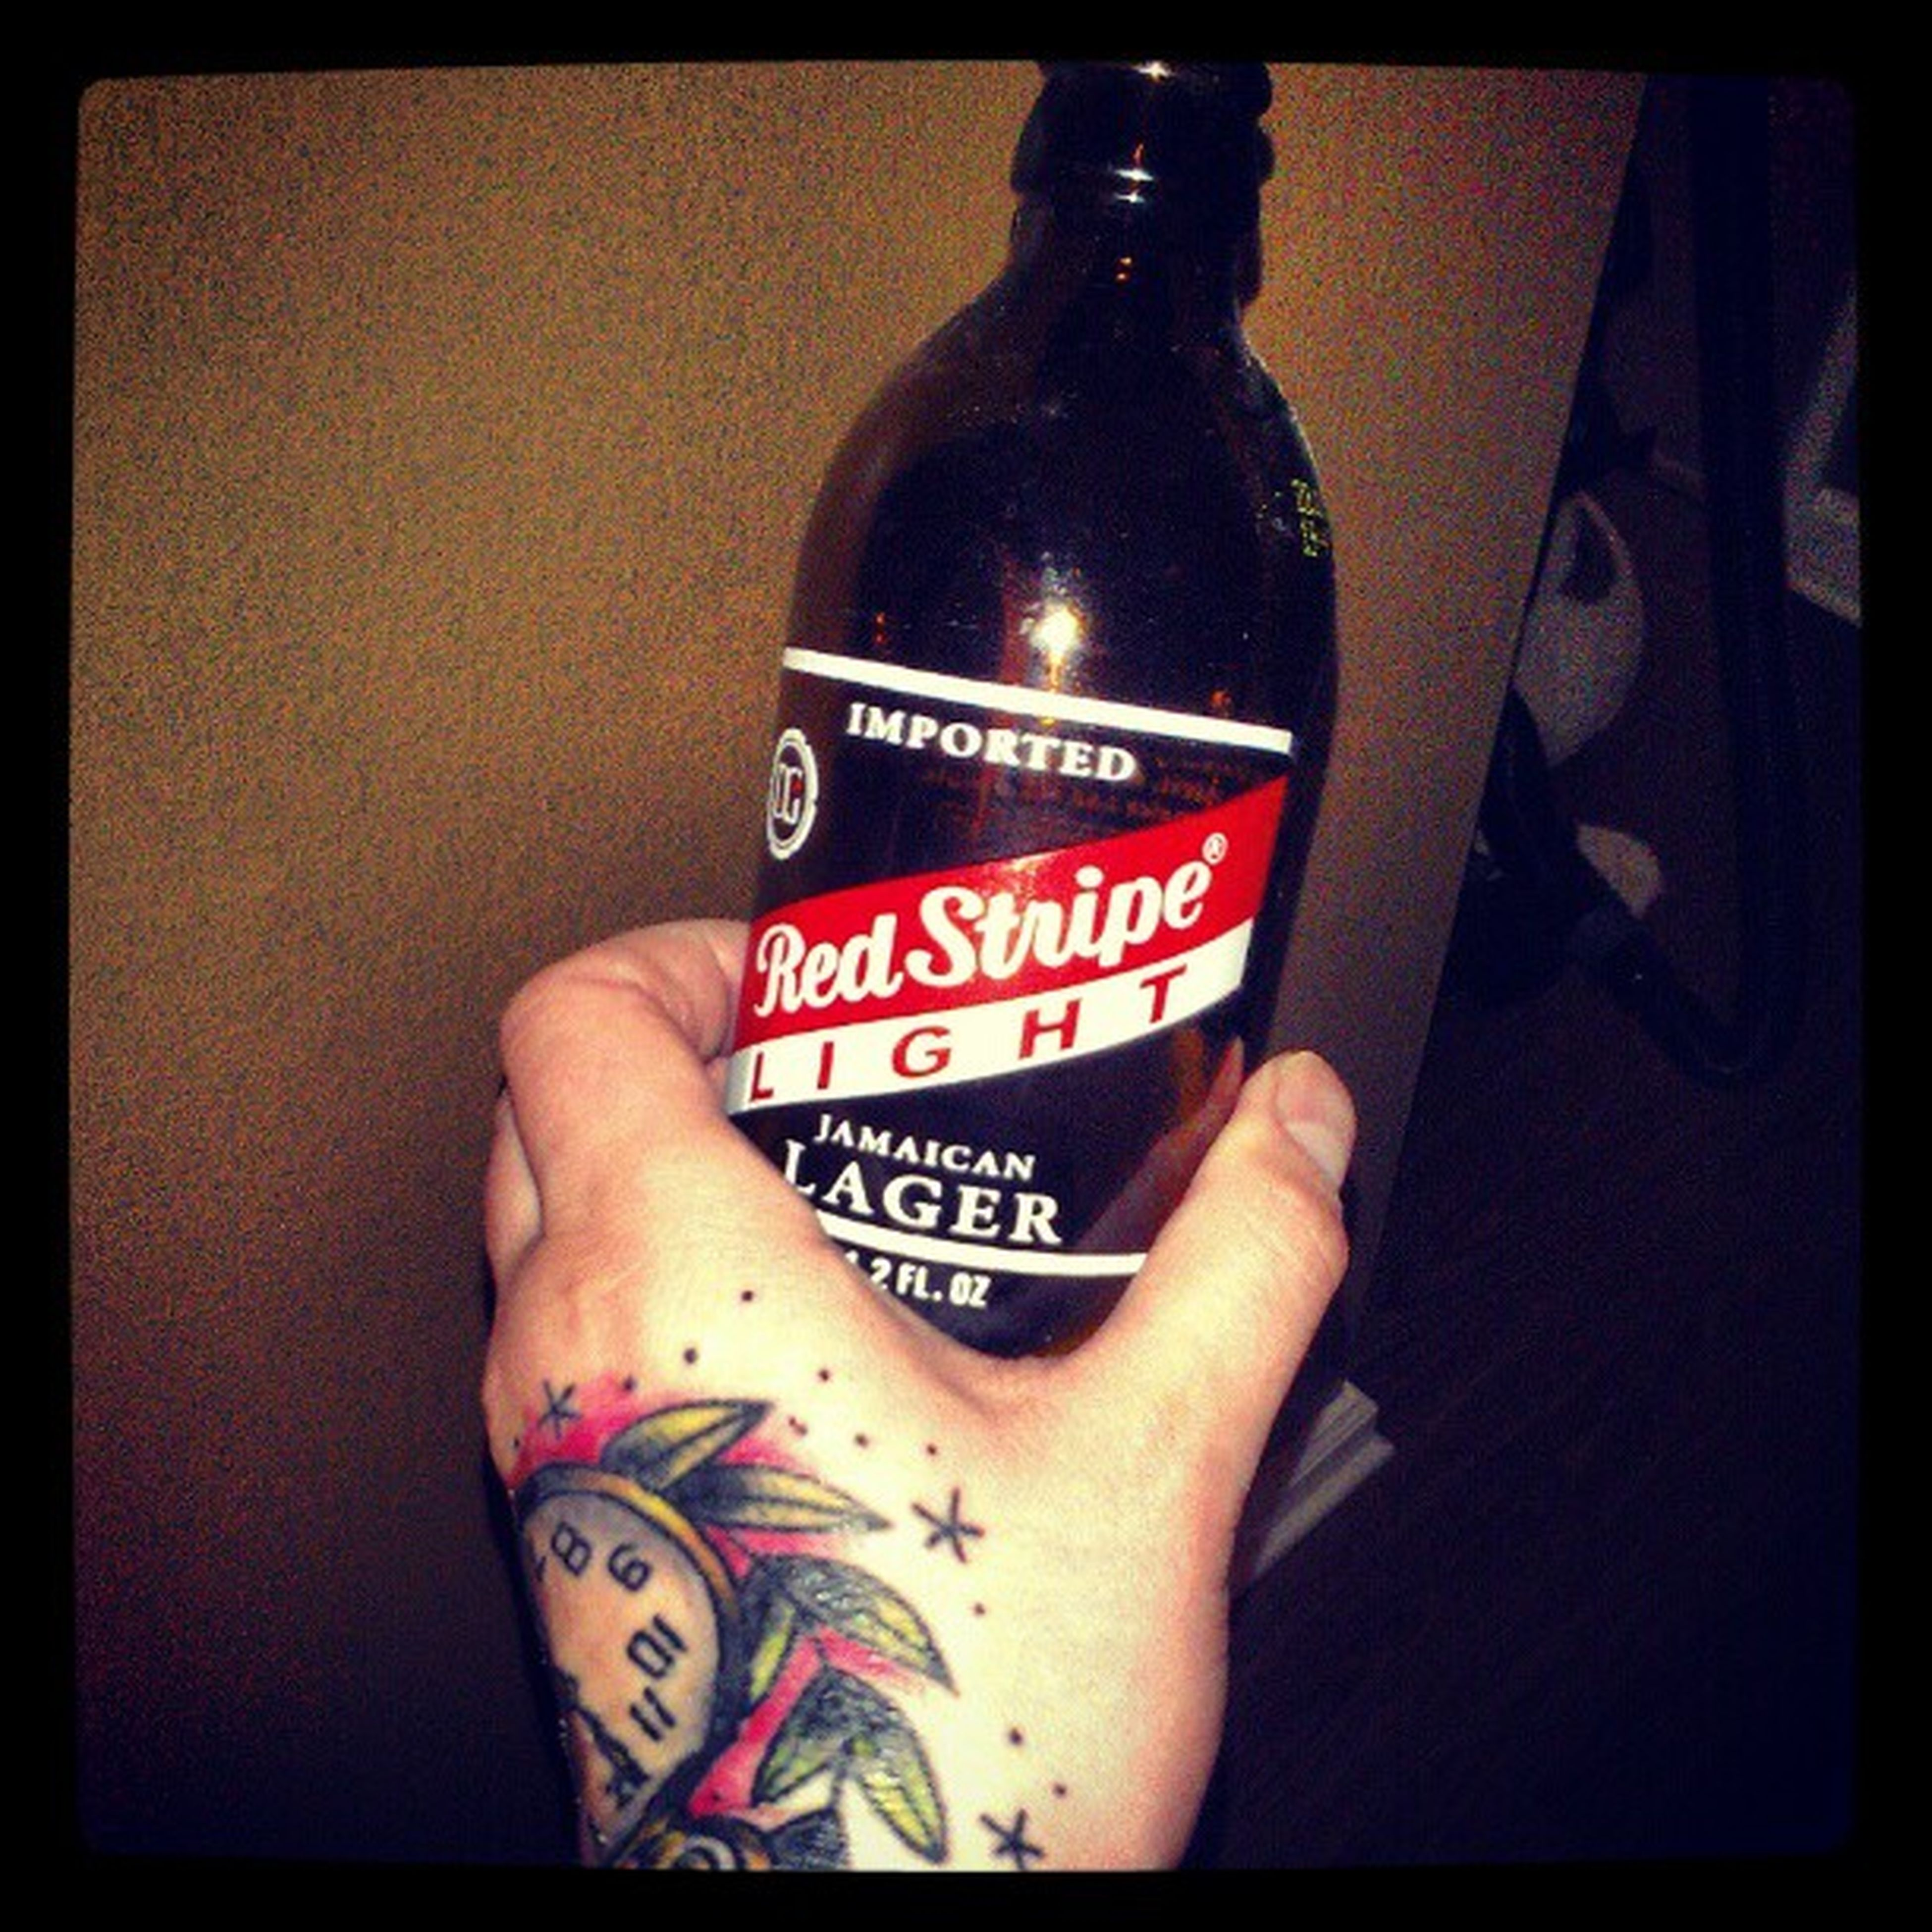 Beer Redstripelight Handtat tattoo $3 for 12 of these.. can't beat that